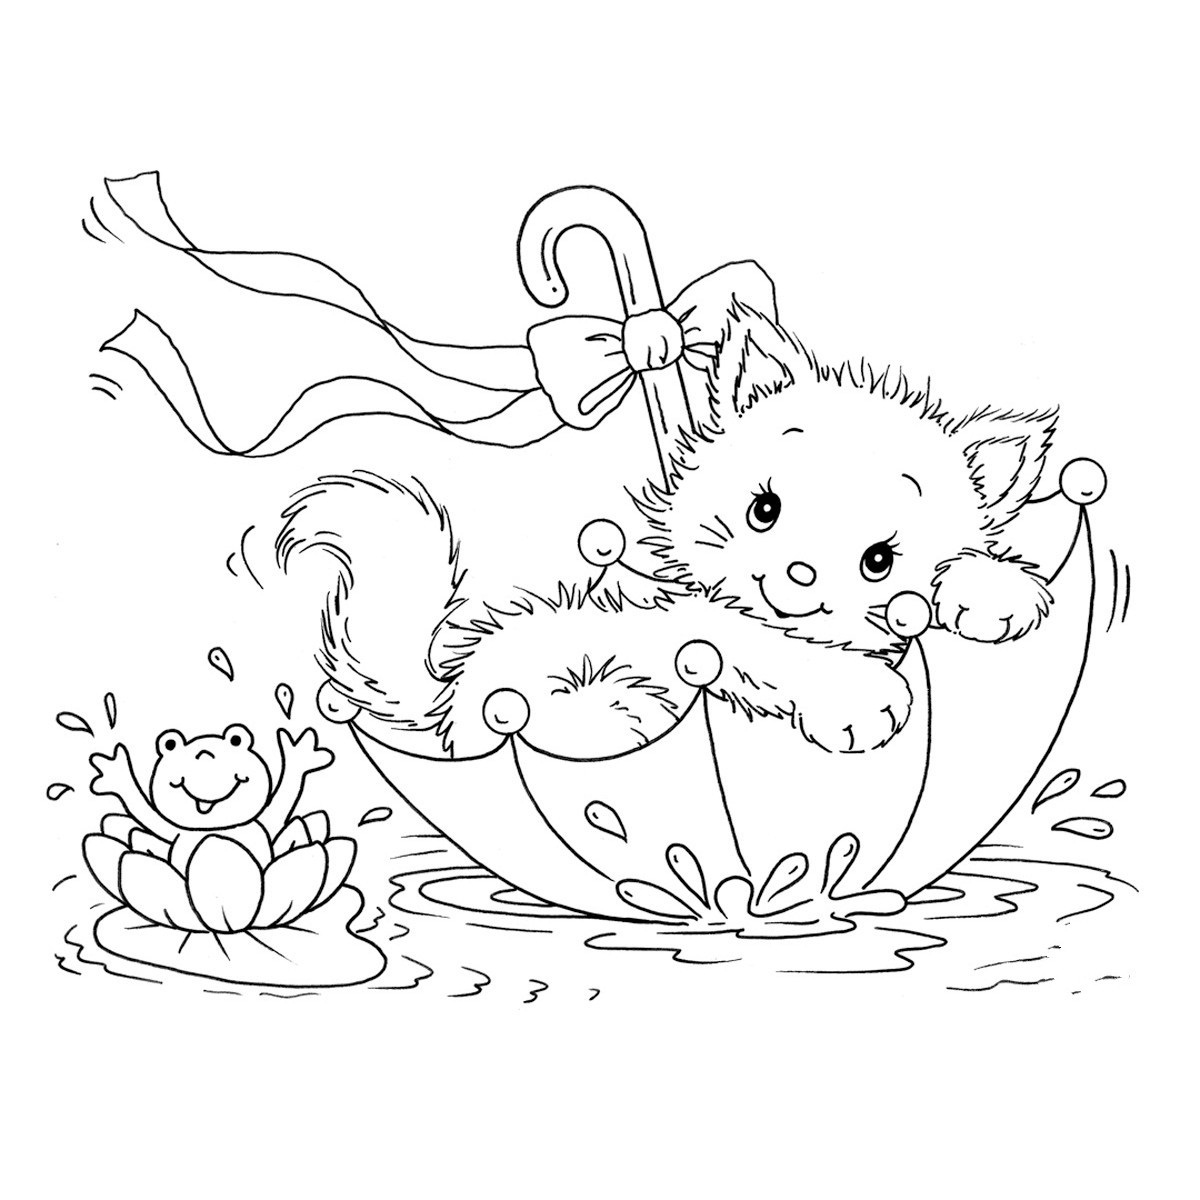 cat to color free printable kitten coloring pages for kids best cat color to